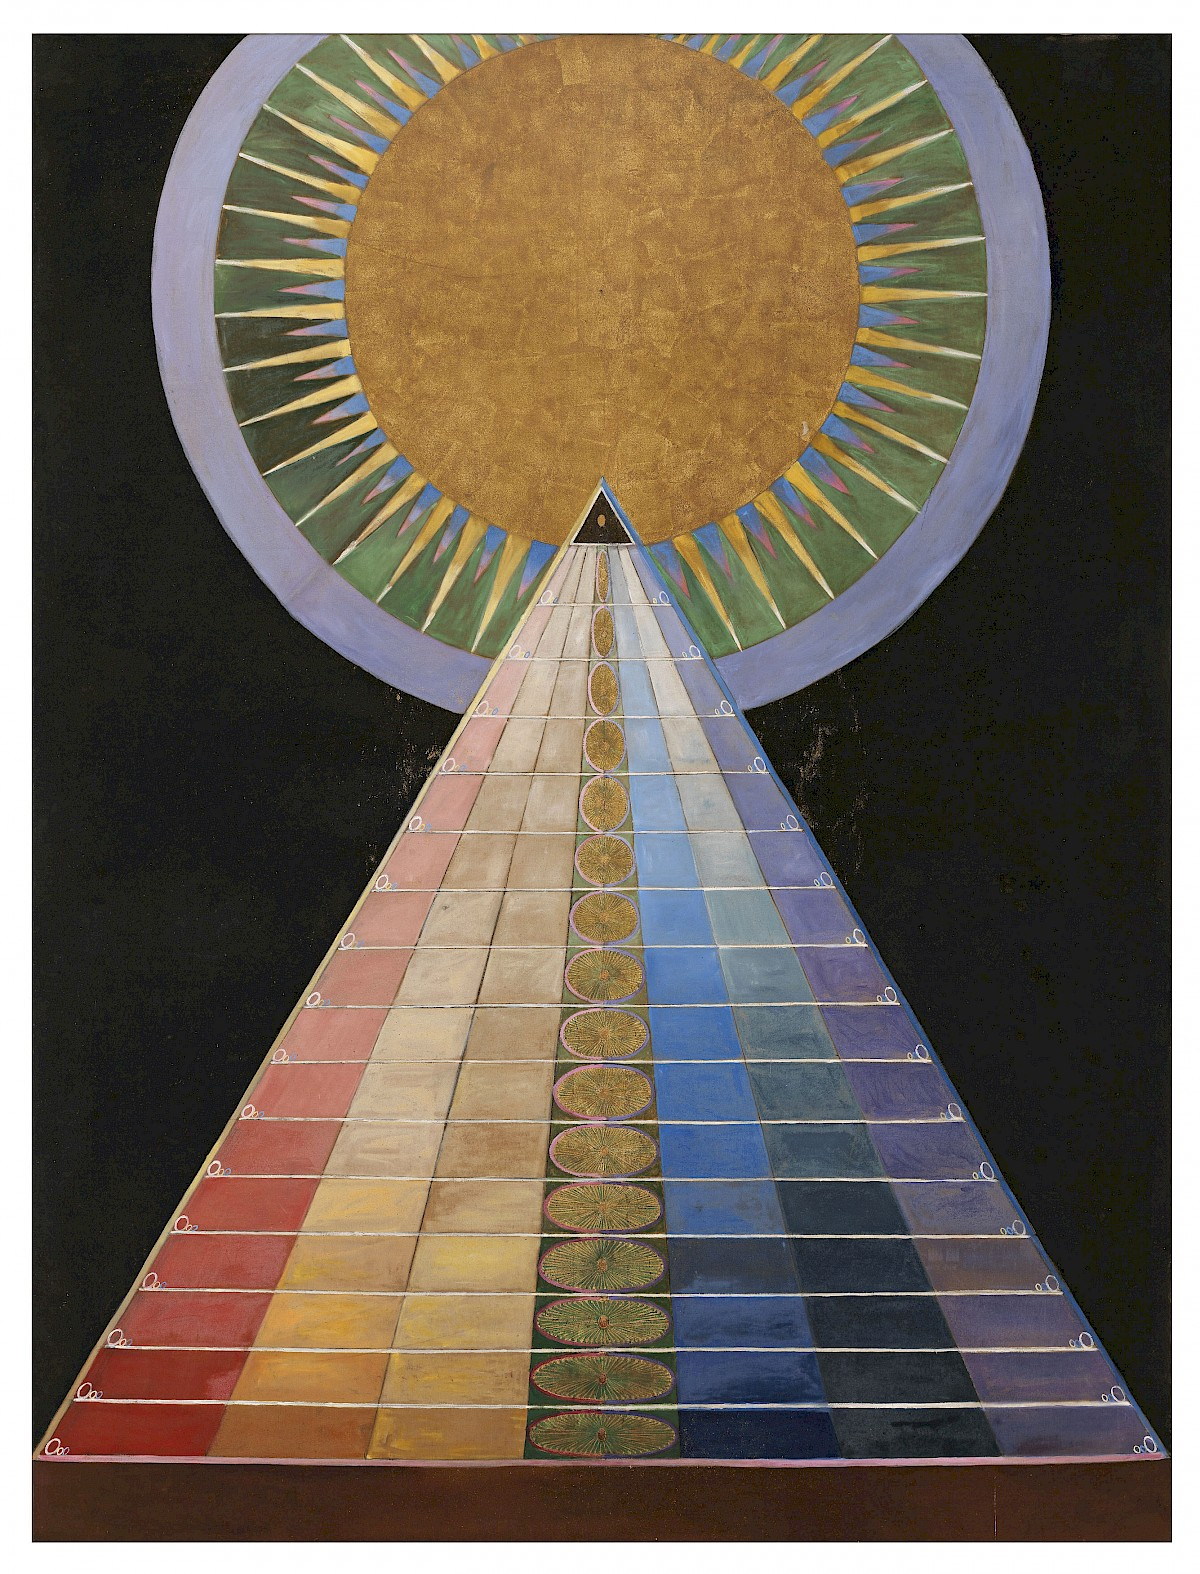 Hilma af Klint - Altarpiece No. 1 Group X, 1915 | Trivium ...